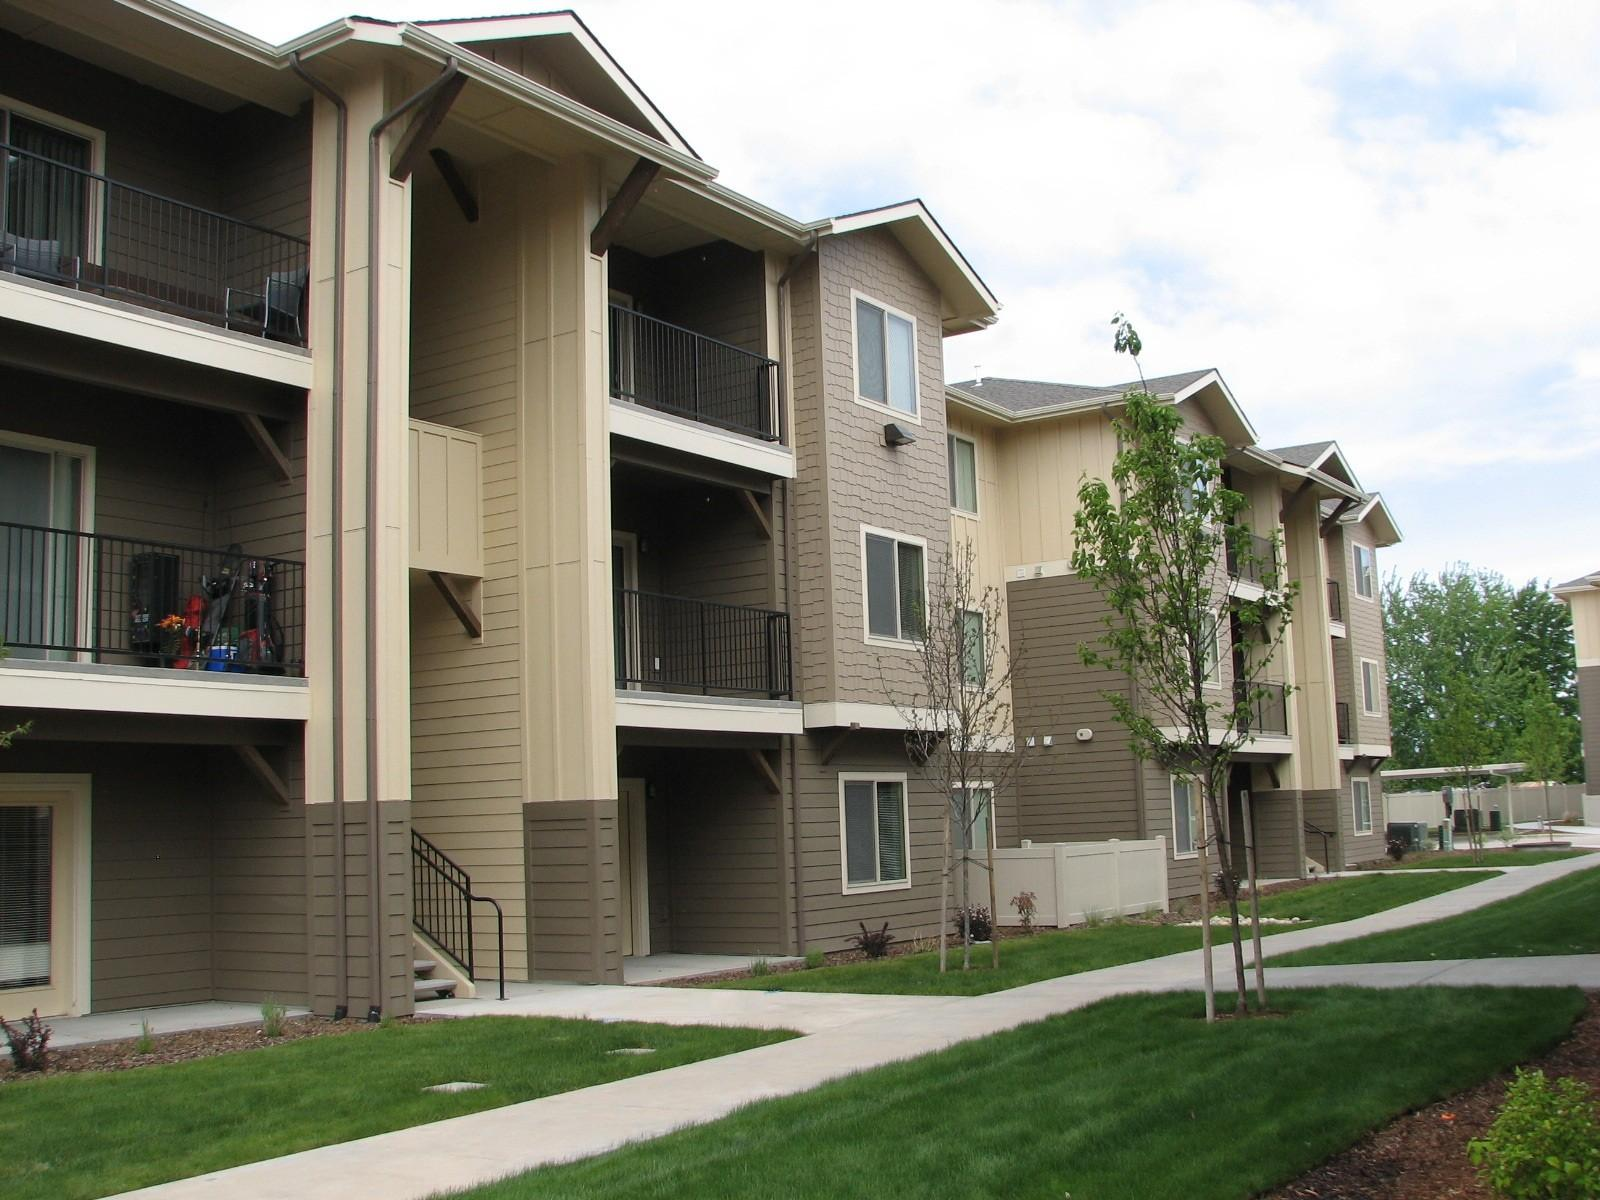 51 e blue heron ln apartments meridian id walk score for 1 bedroom apartments in meridian idaho